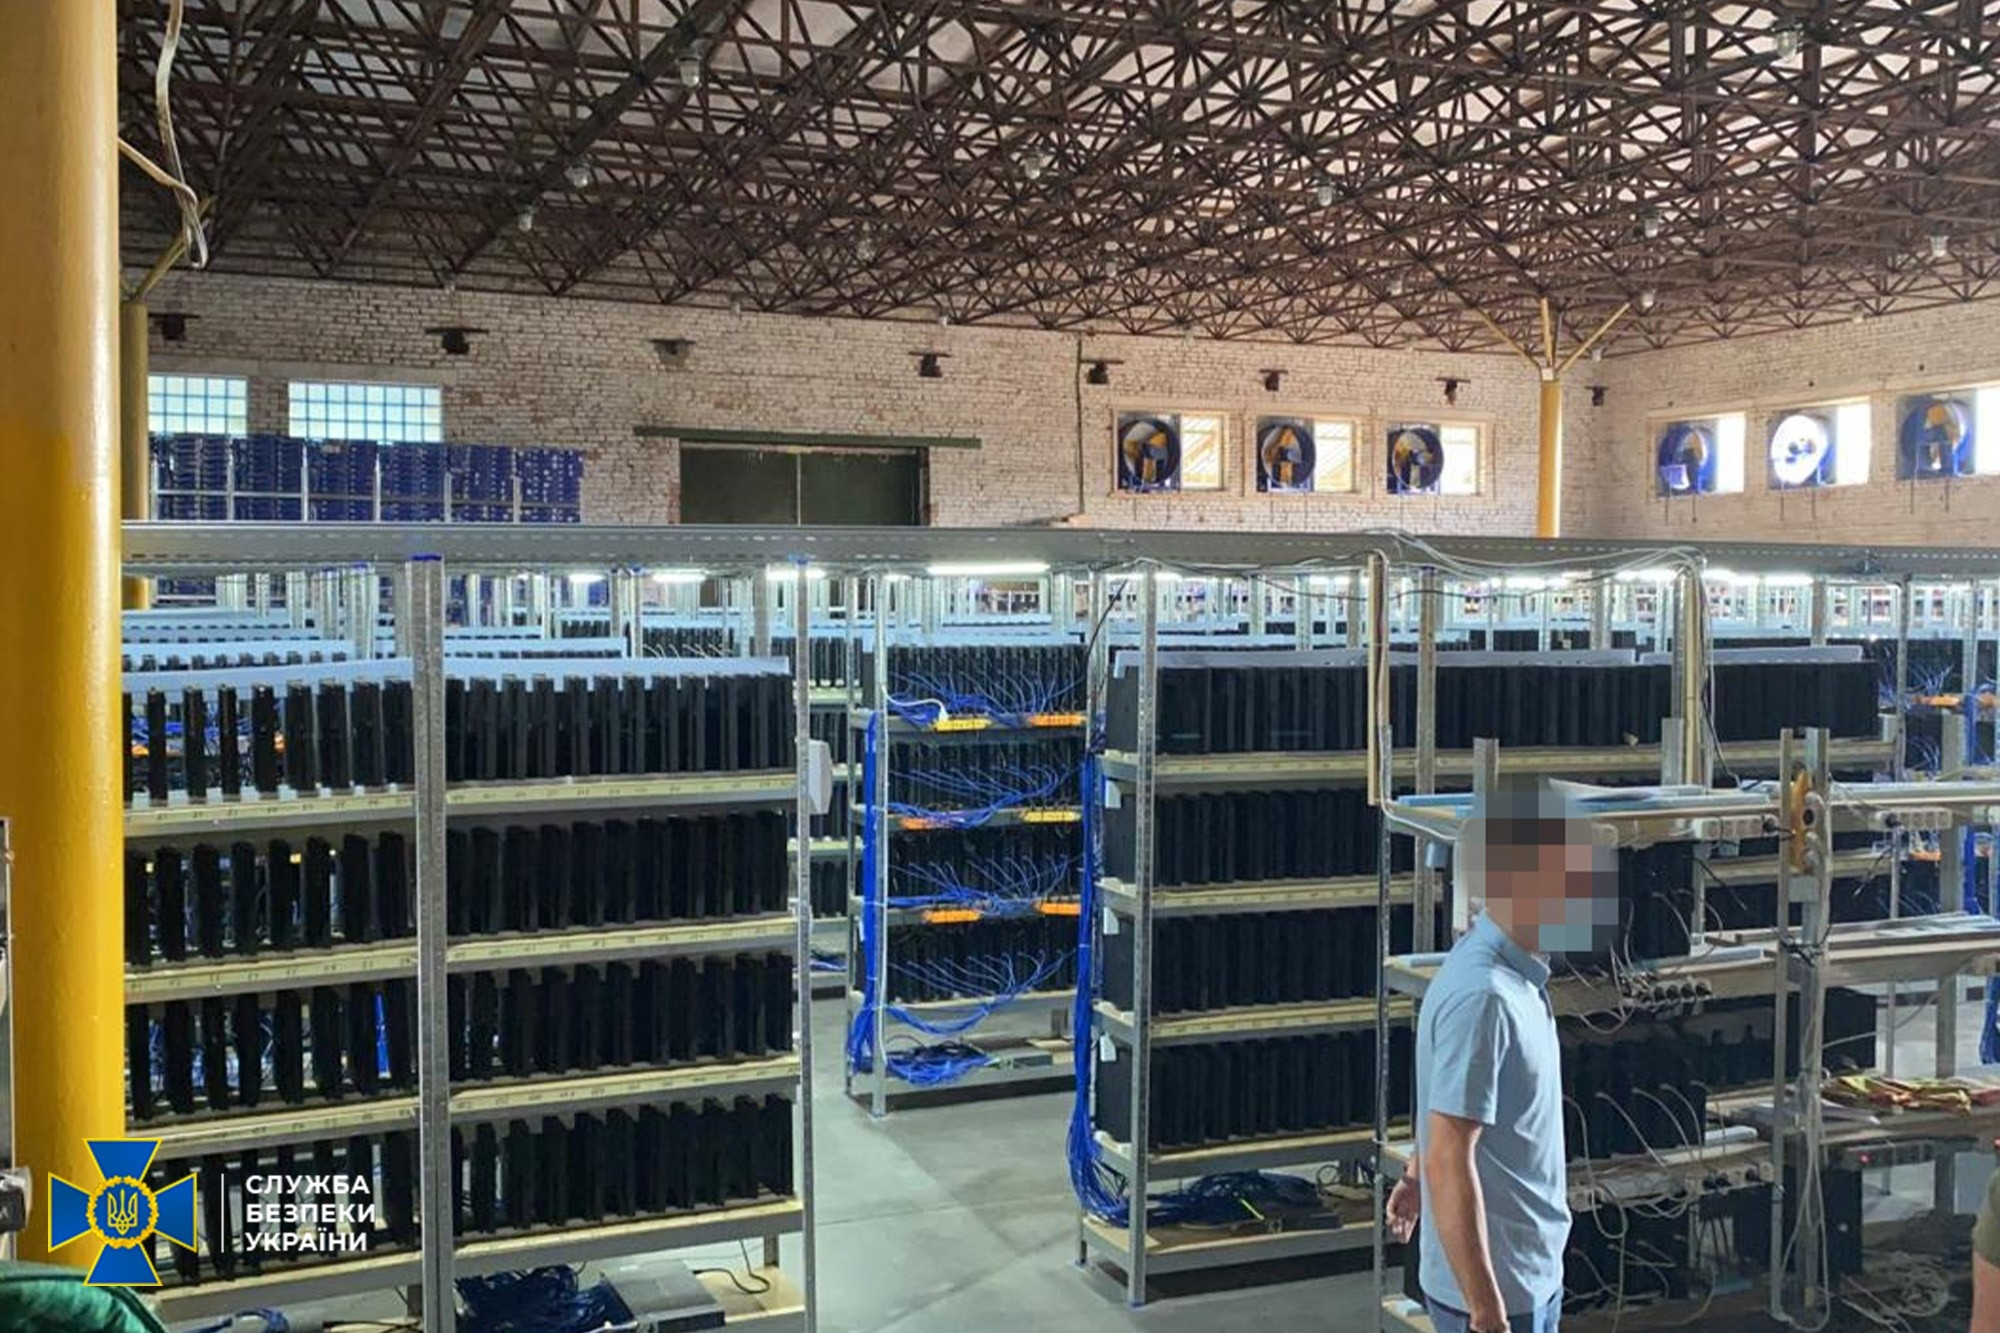 Alleged Ukrainian cryptocurrency mining operation with 3,800 PS4 Slims was actually designed for grinding FIFA Ultimate Team coins